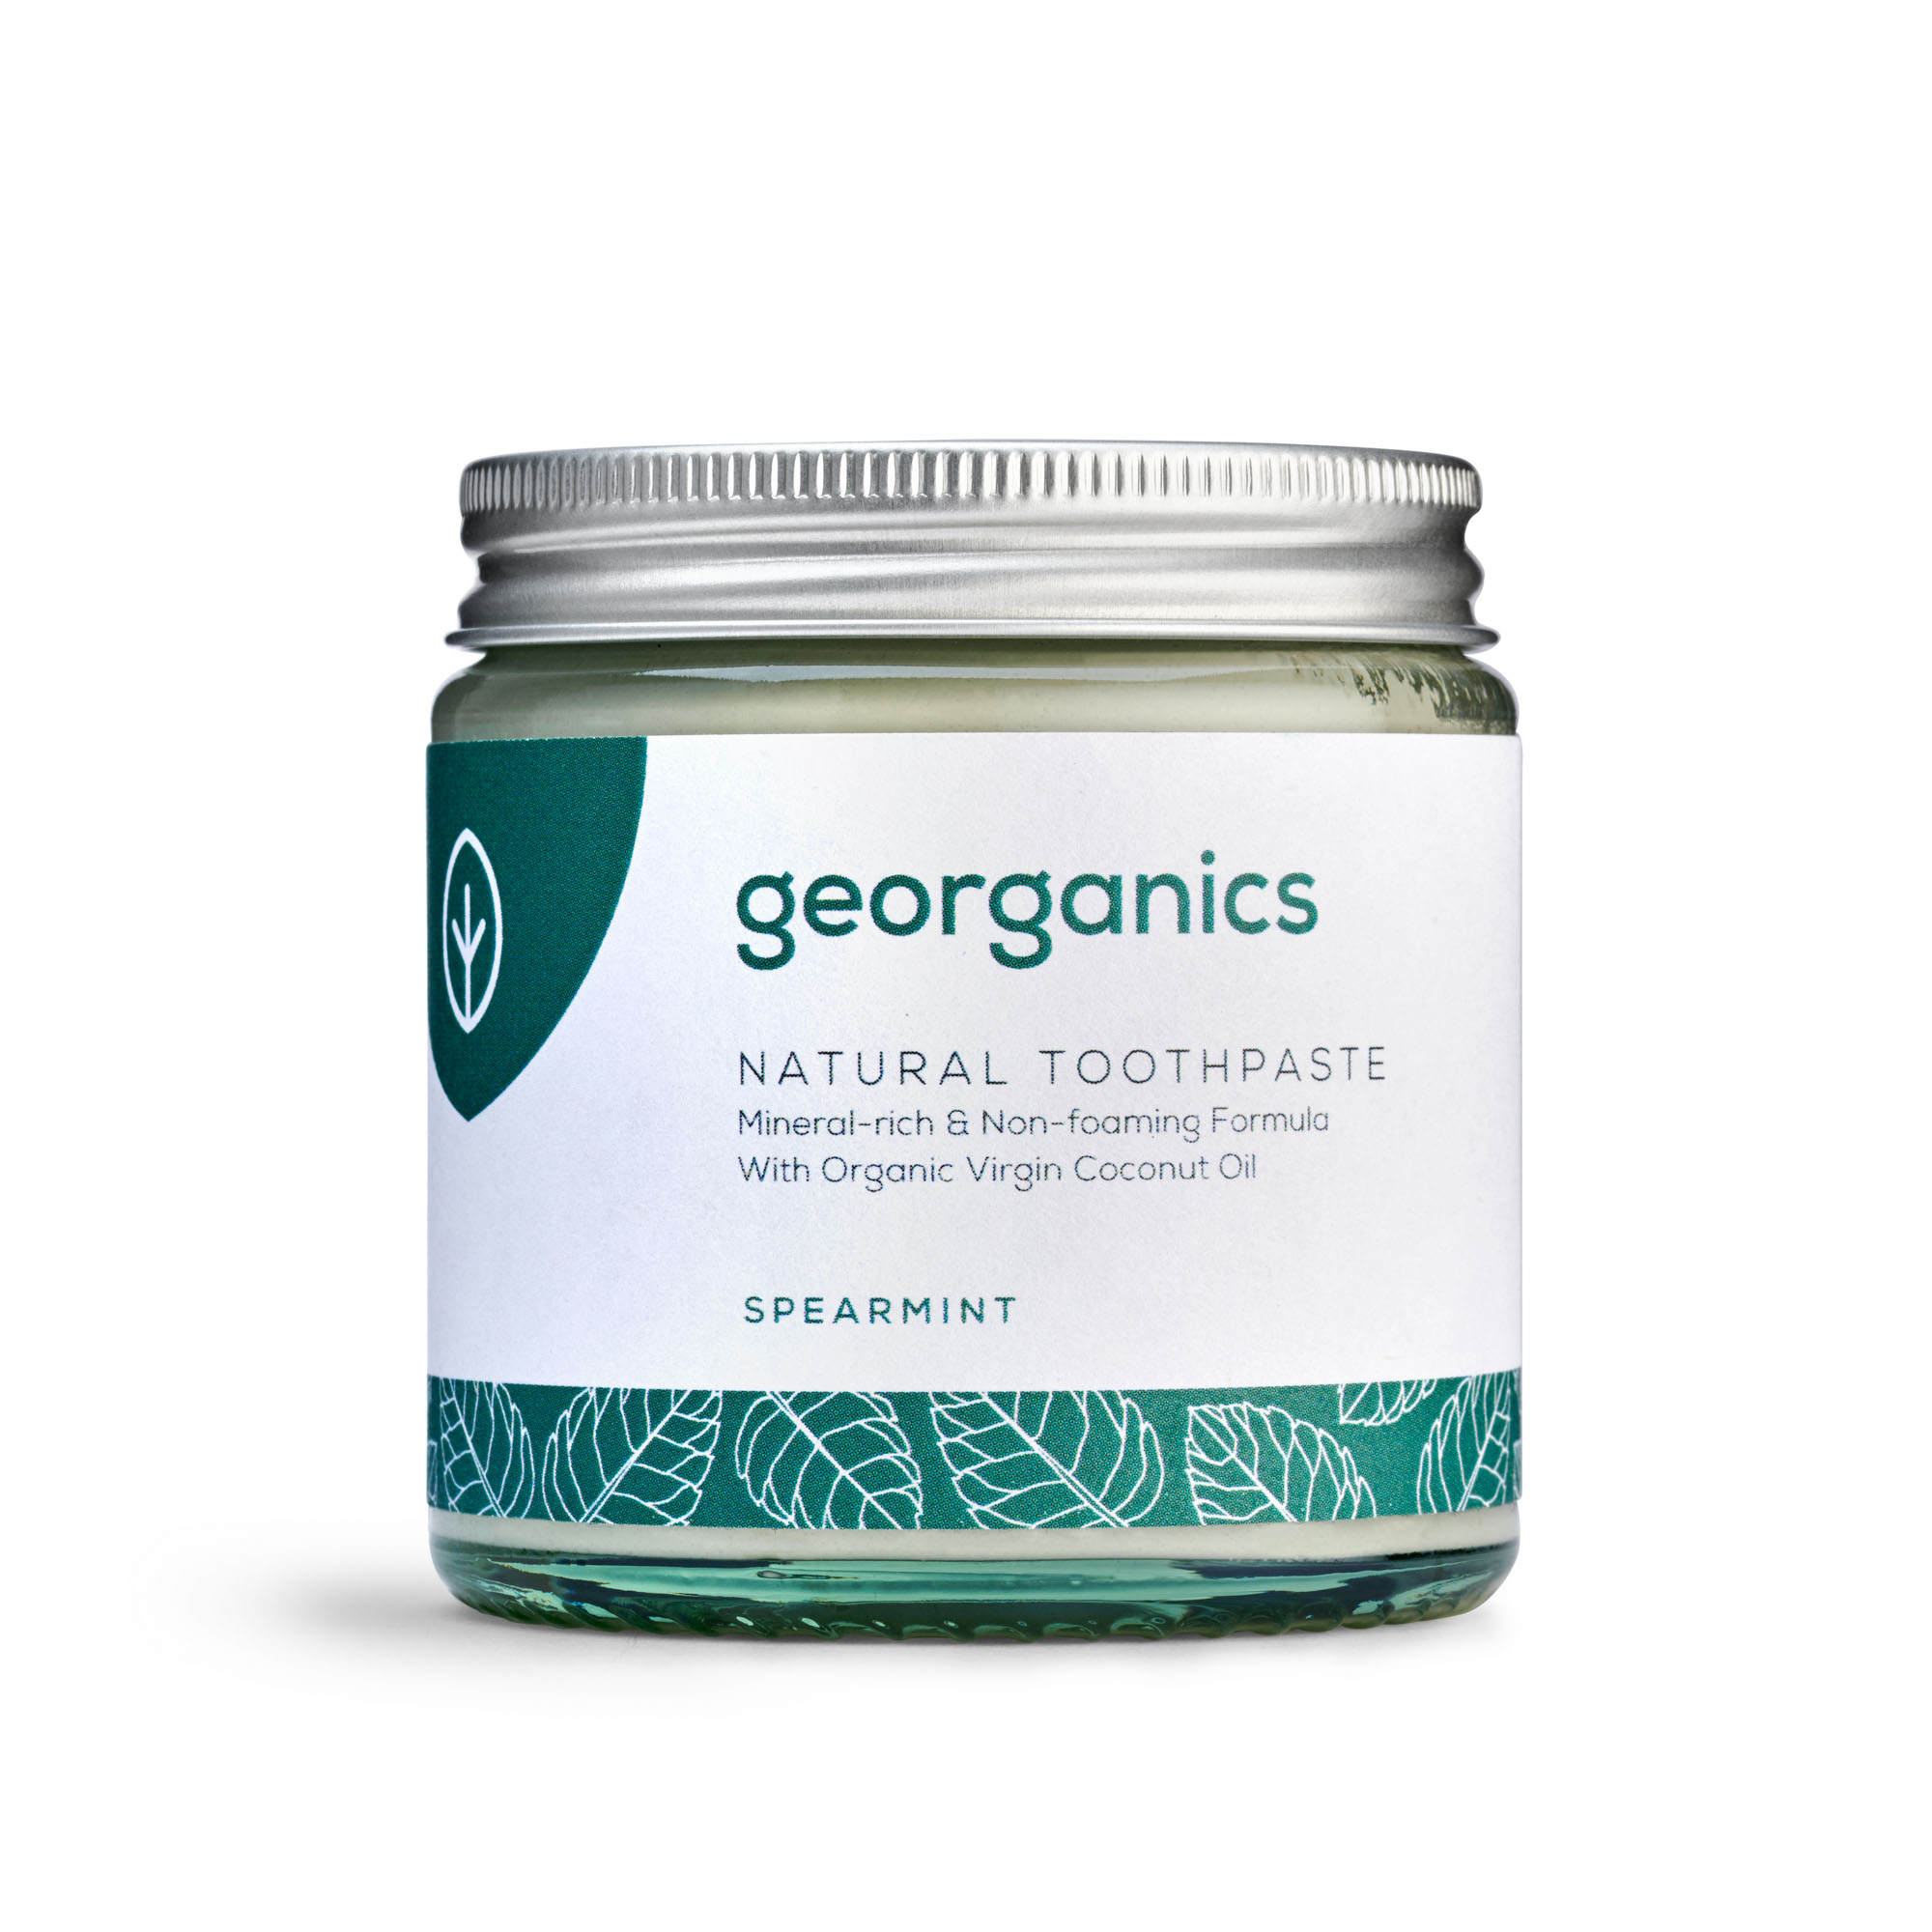 Spearmint Toothpaste (Fluoride Free) by Georganics